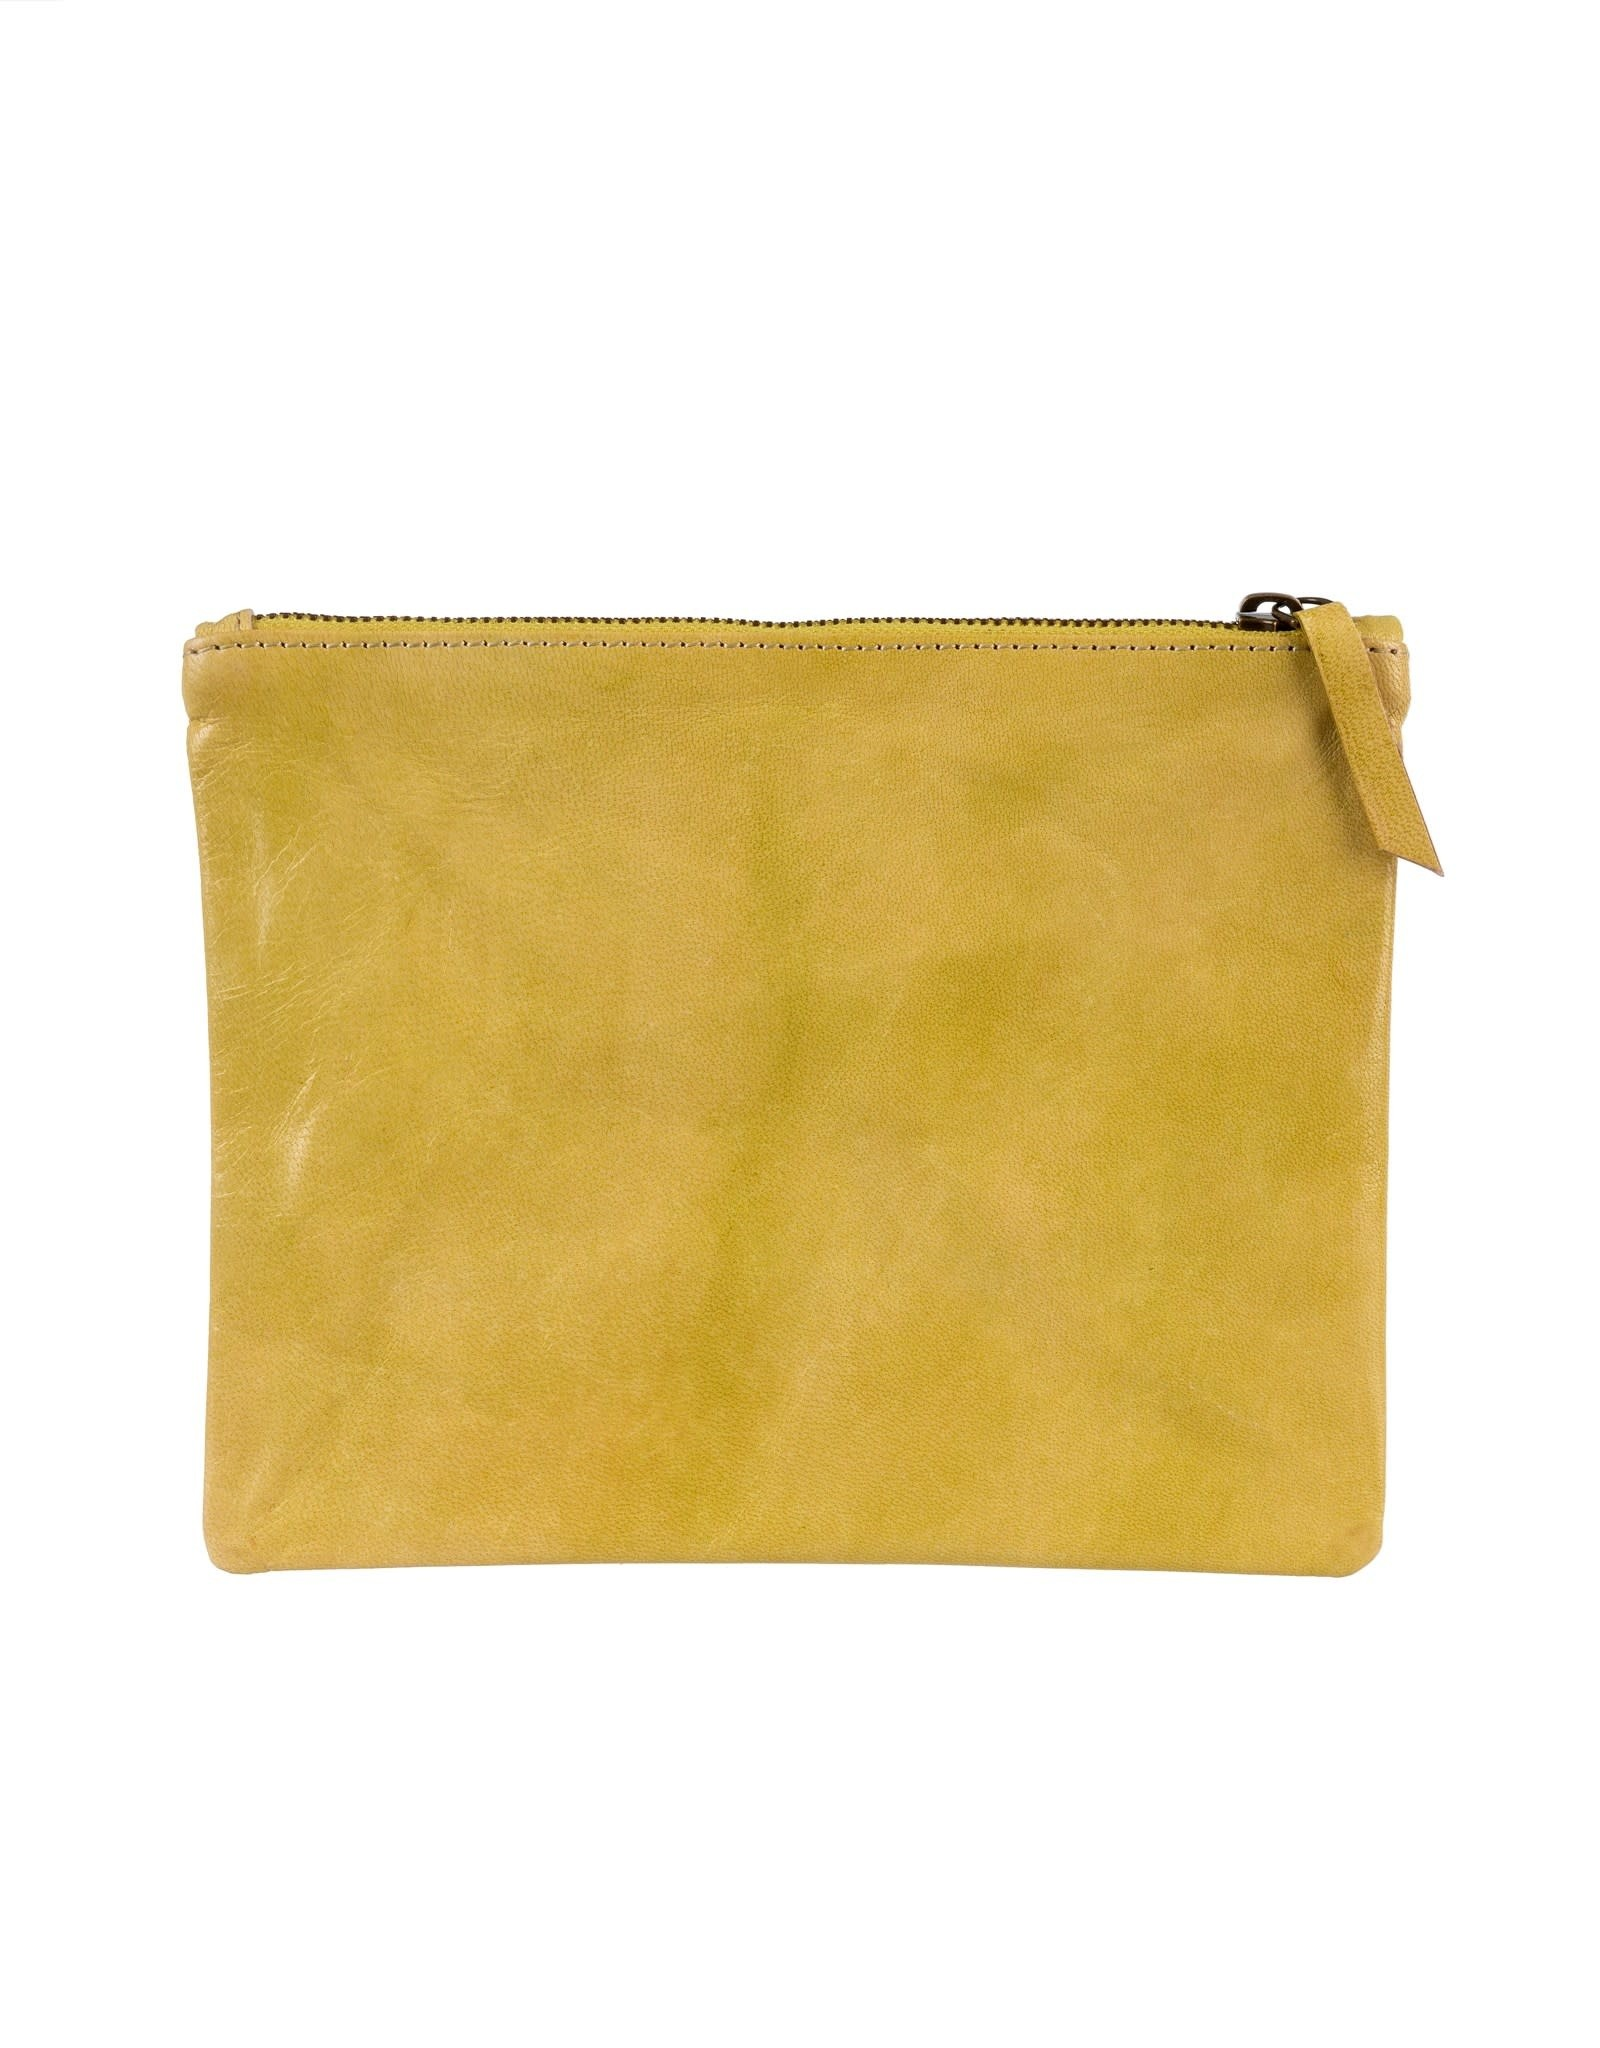 Indaba Artisan Leather Pouch - Lime